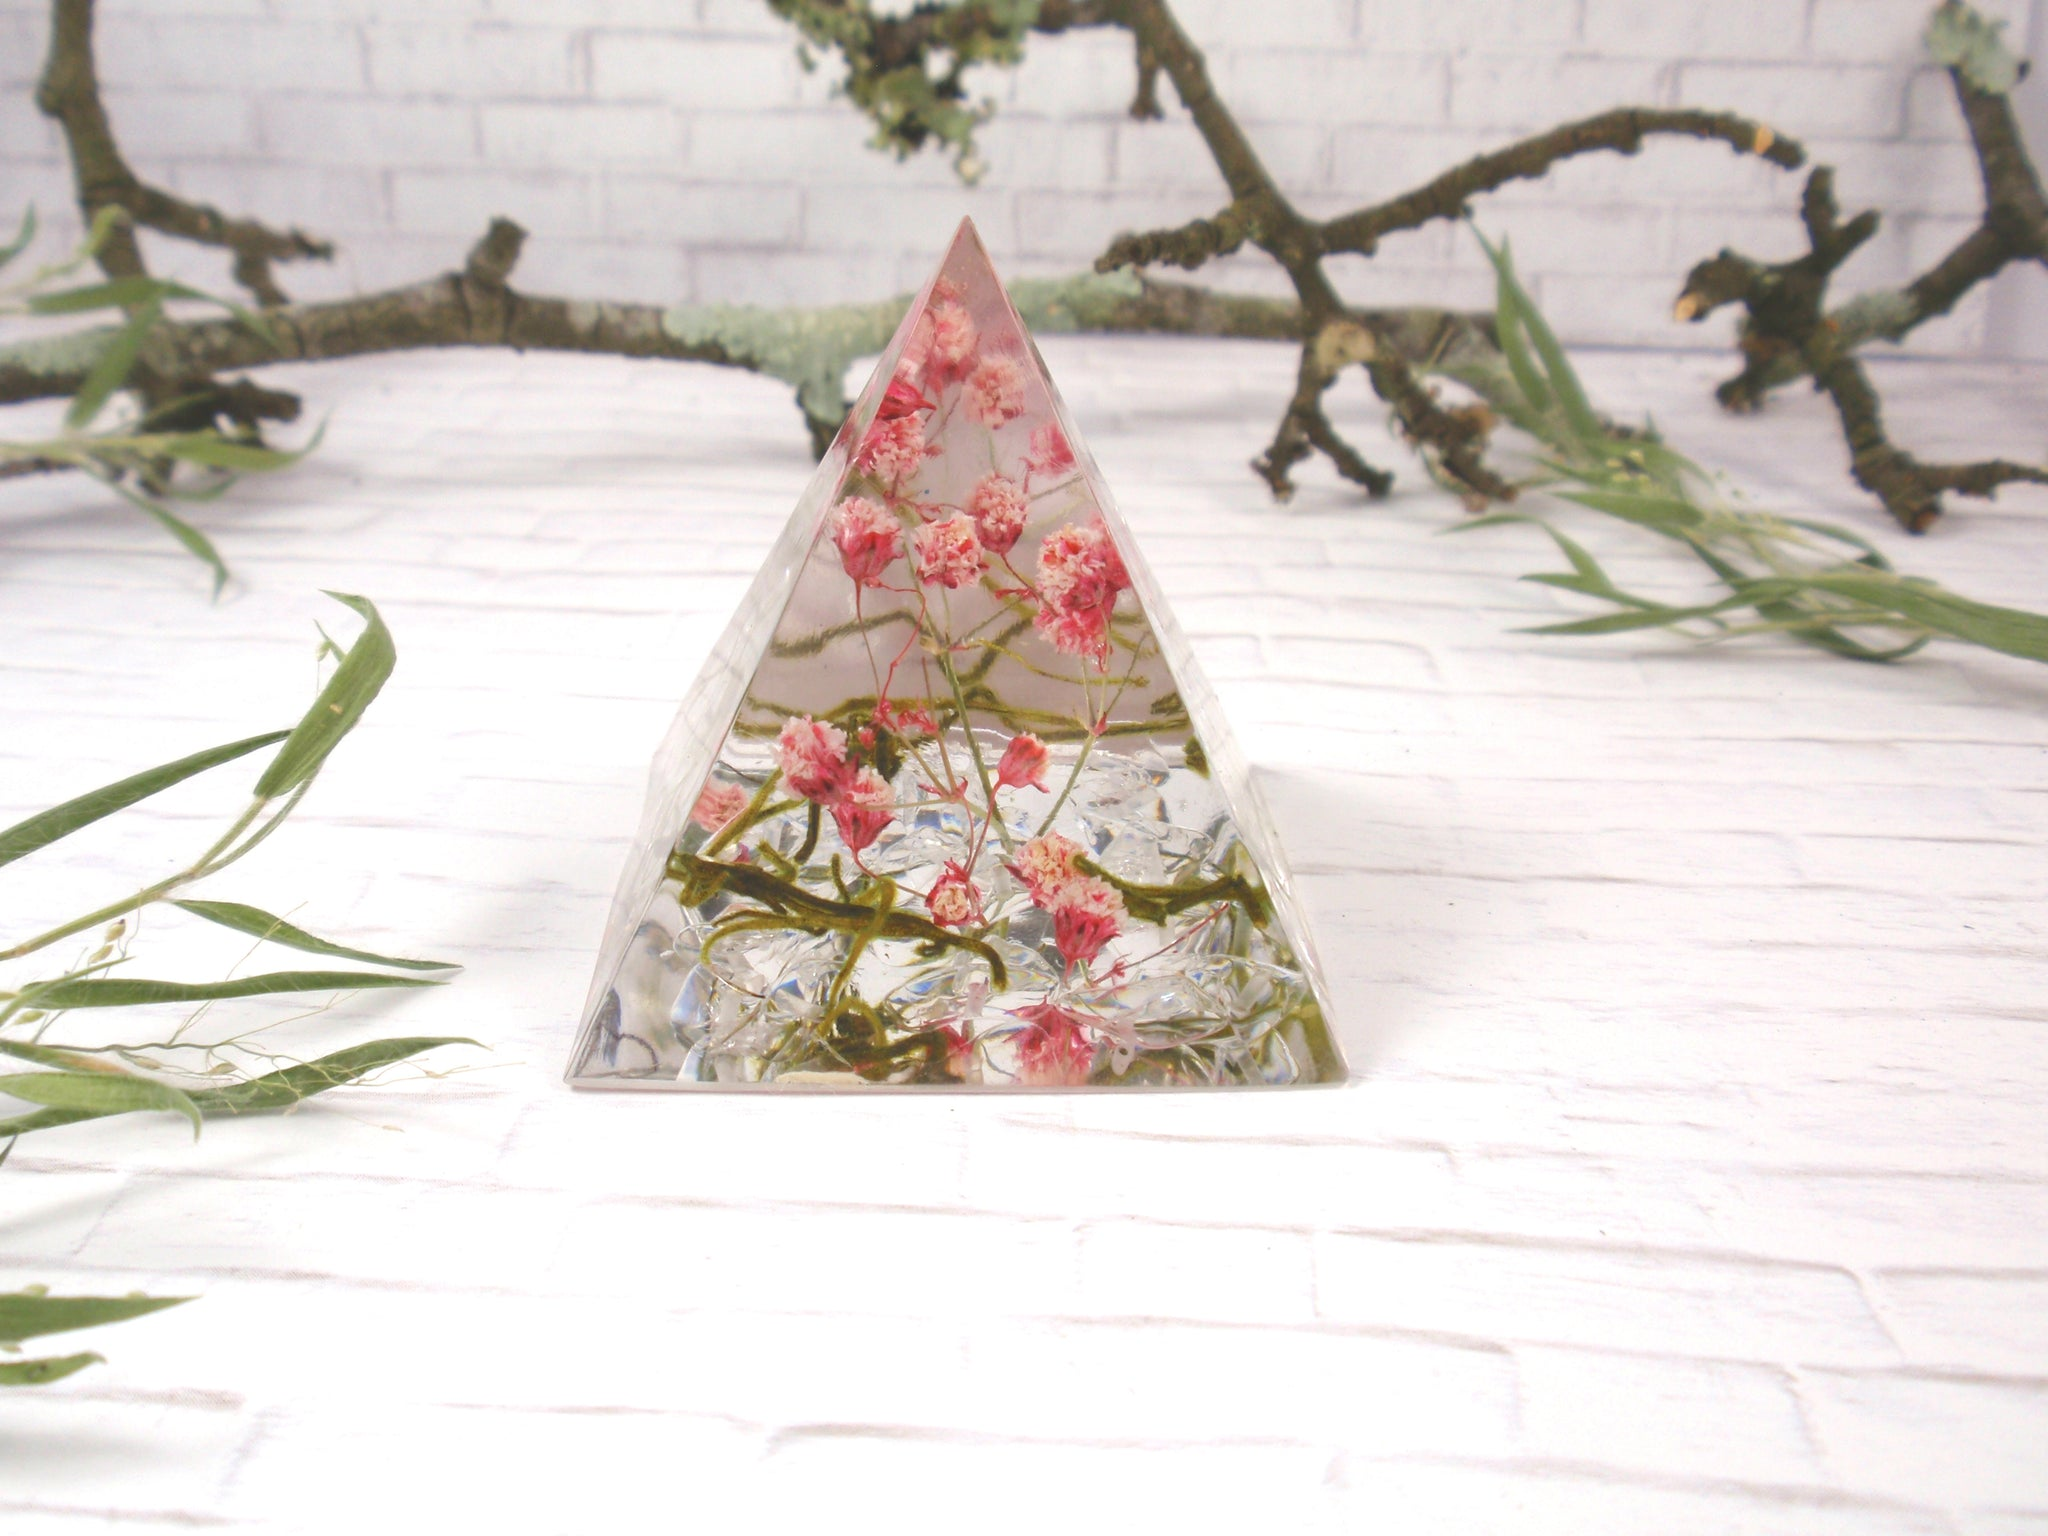 resin pyramid with flowers